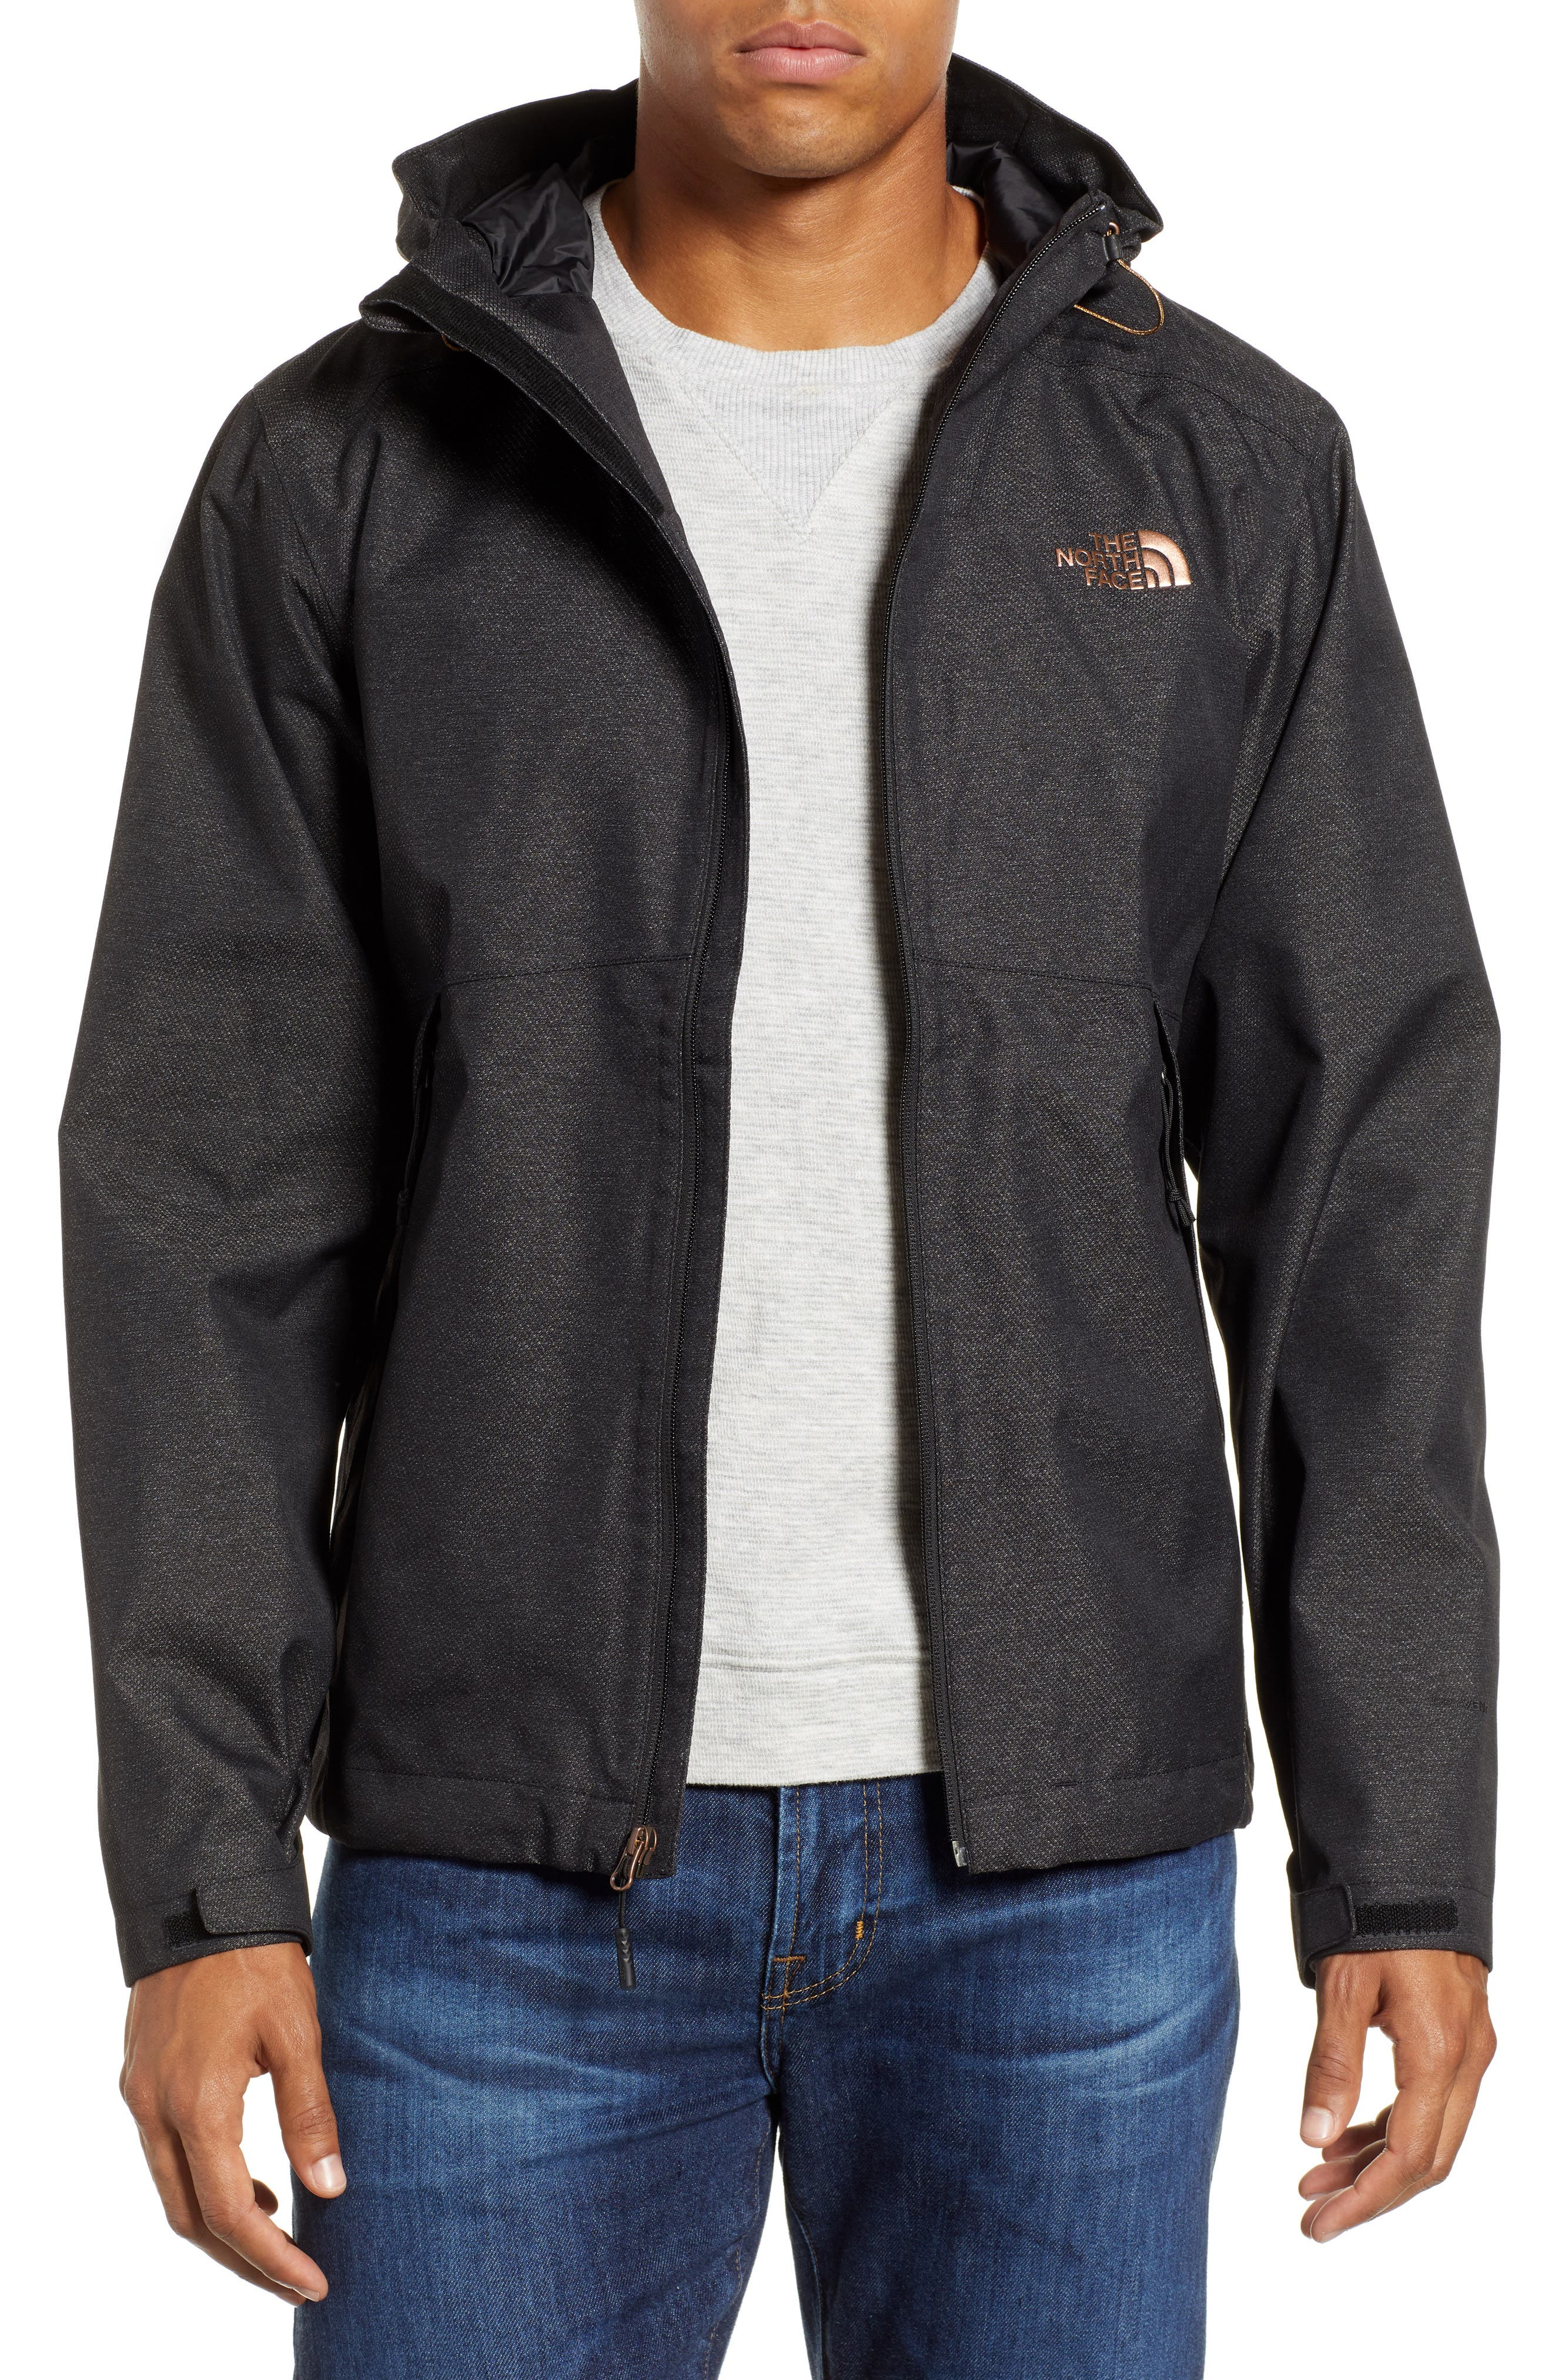 Millerton Hooded Waterproof Jacket,                         Main,                         color, TNF BLACK / METALLIC COPPER